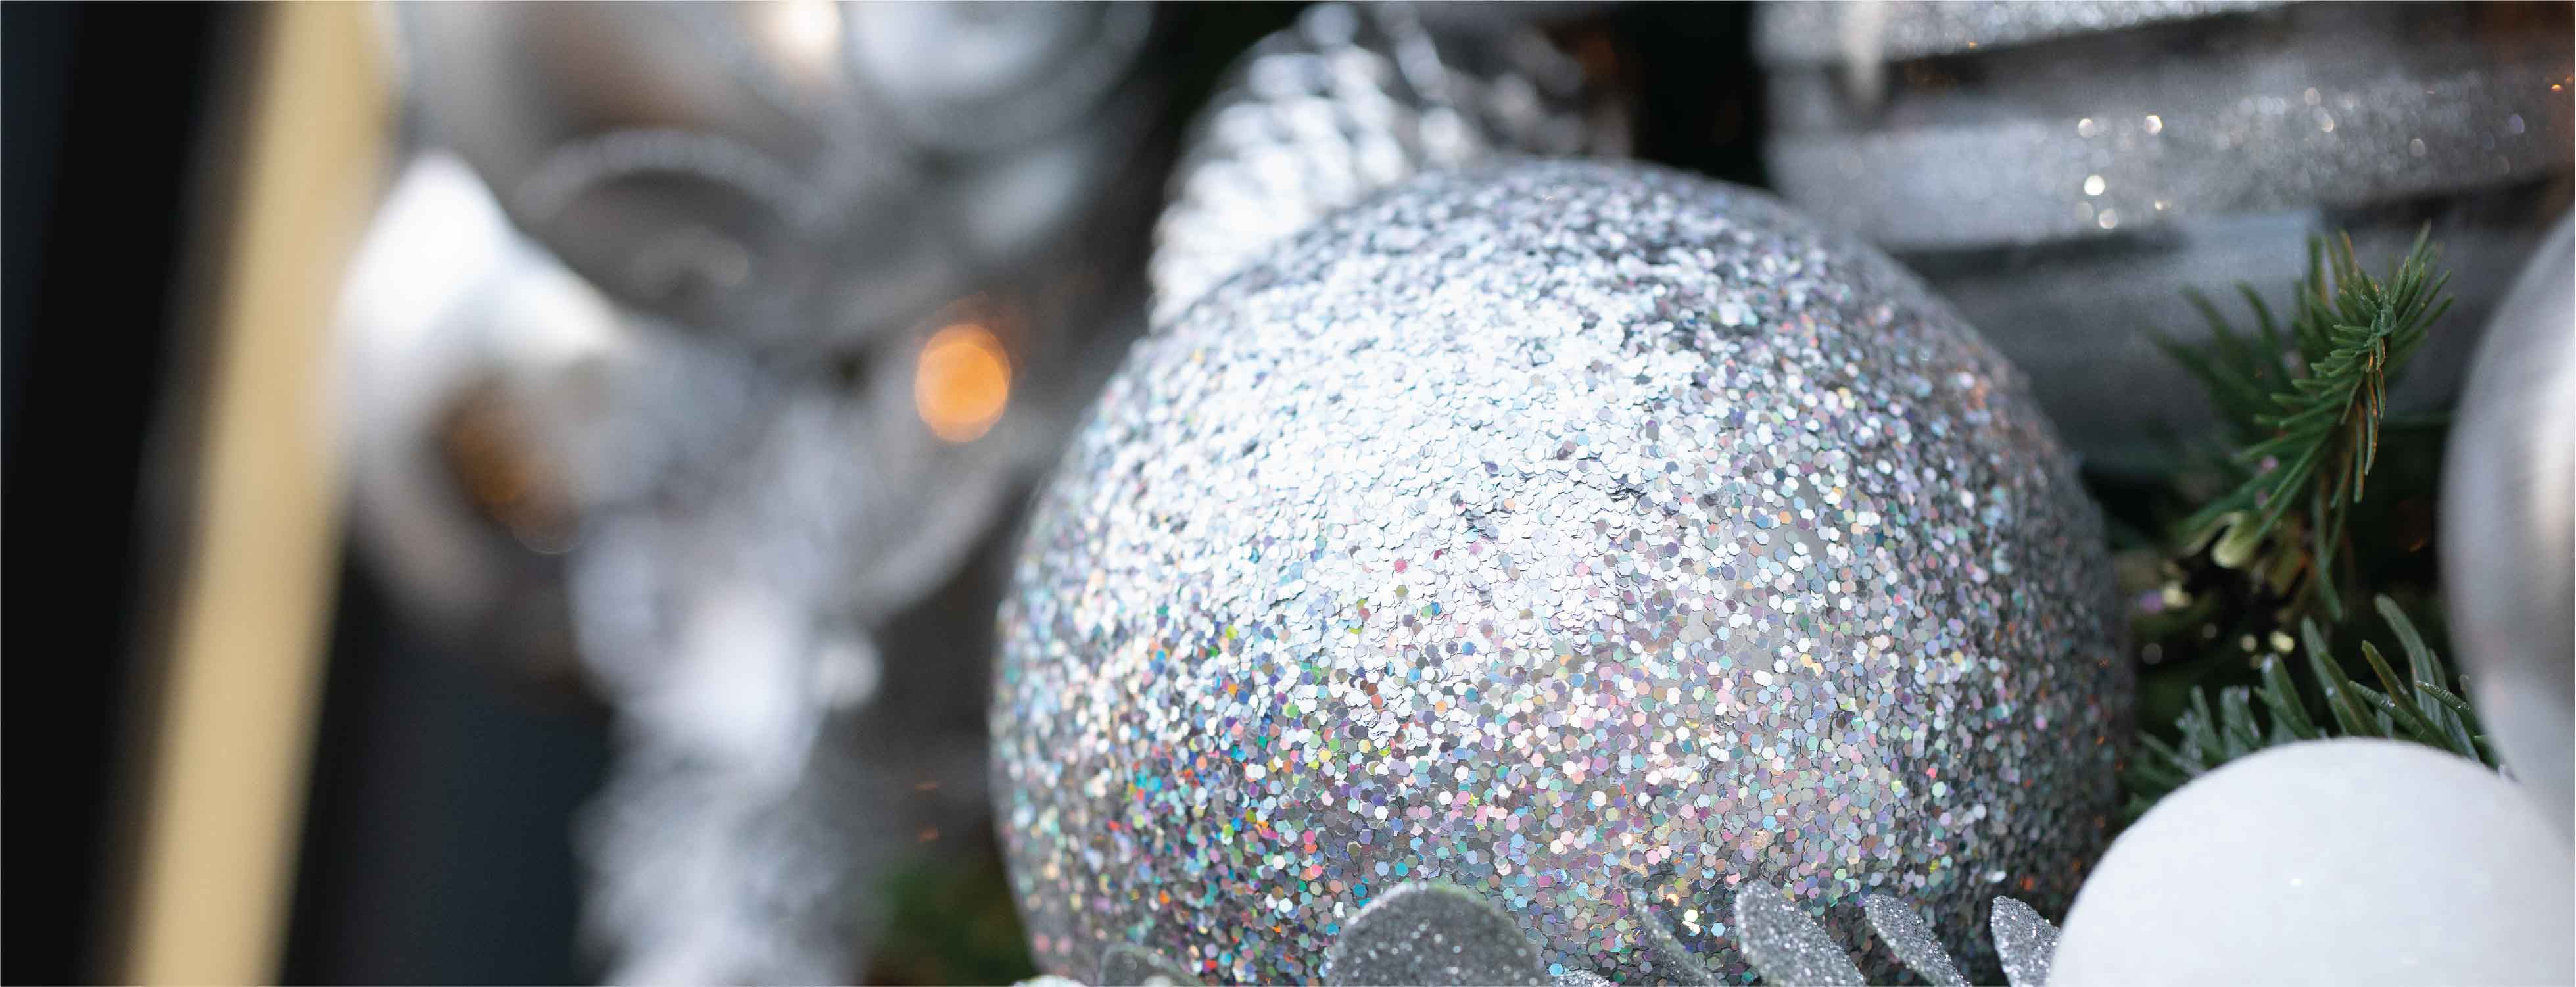 Silver Wreath with Glitter Bauble